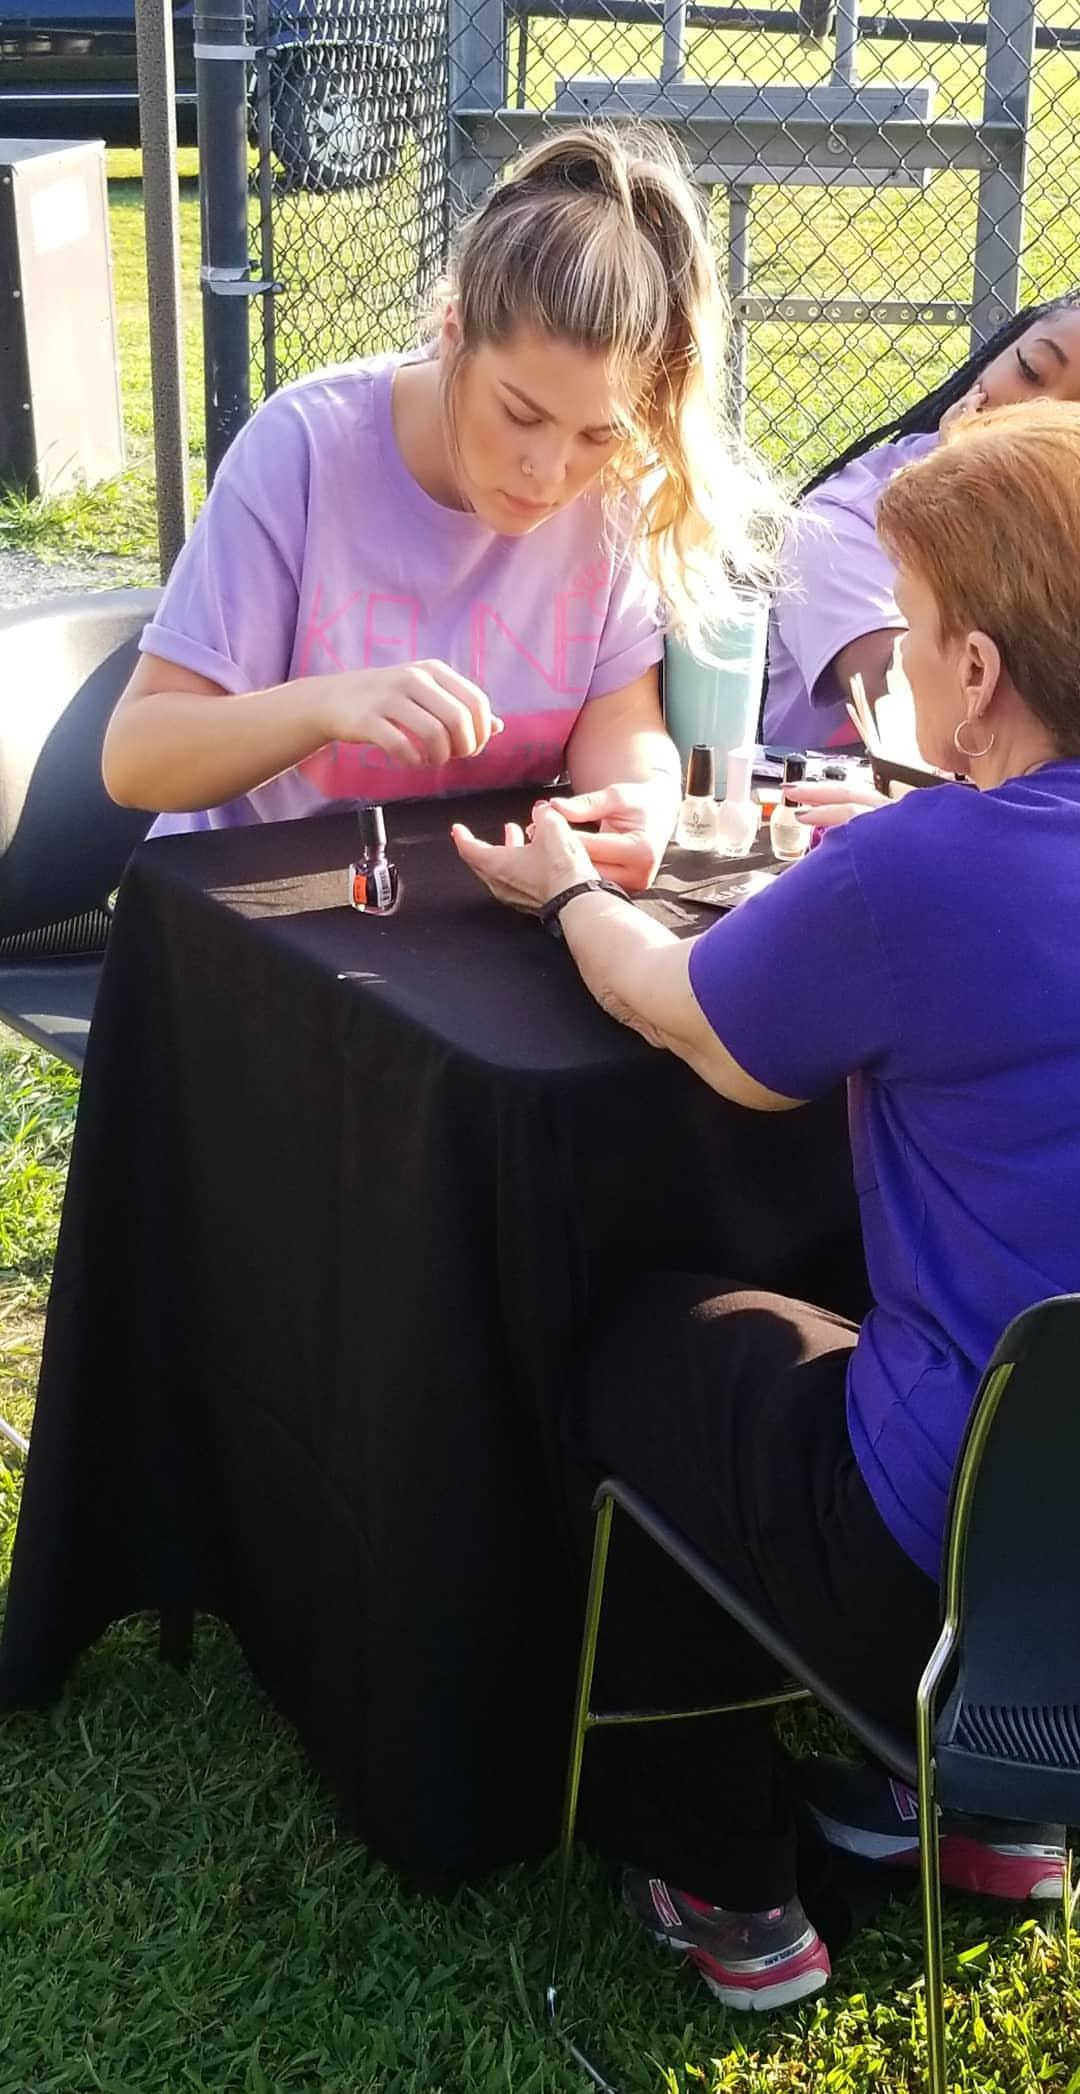 girl in purple shirt painting a woman's nails